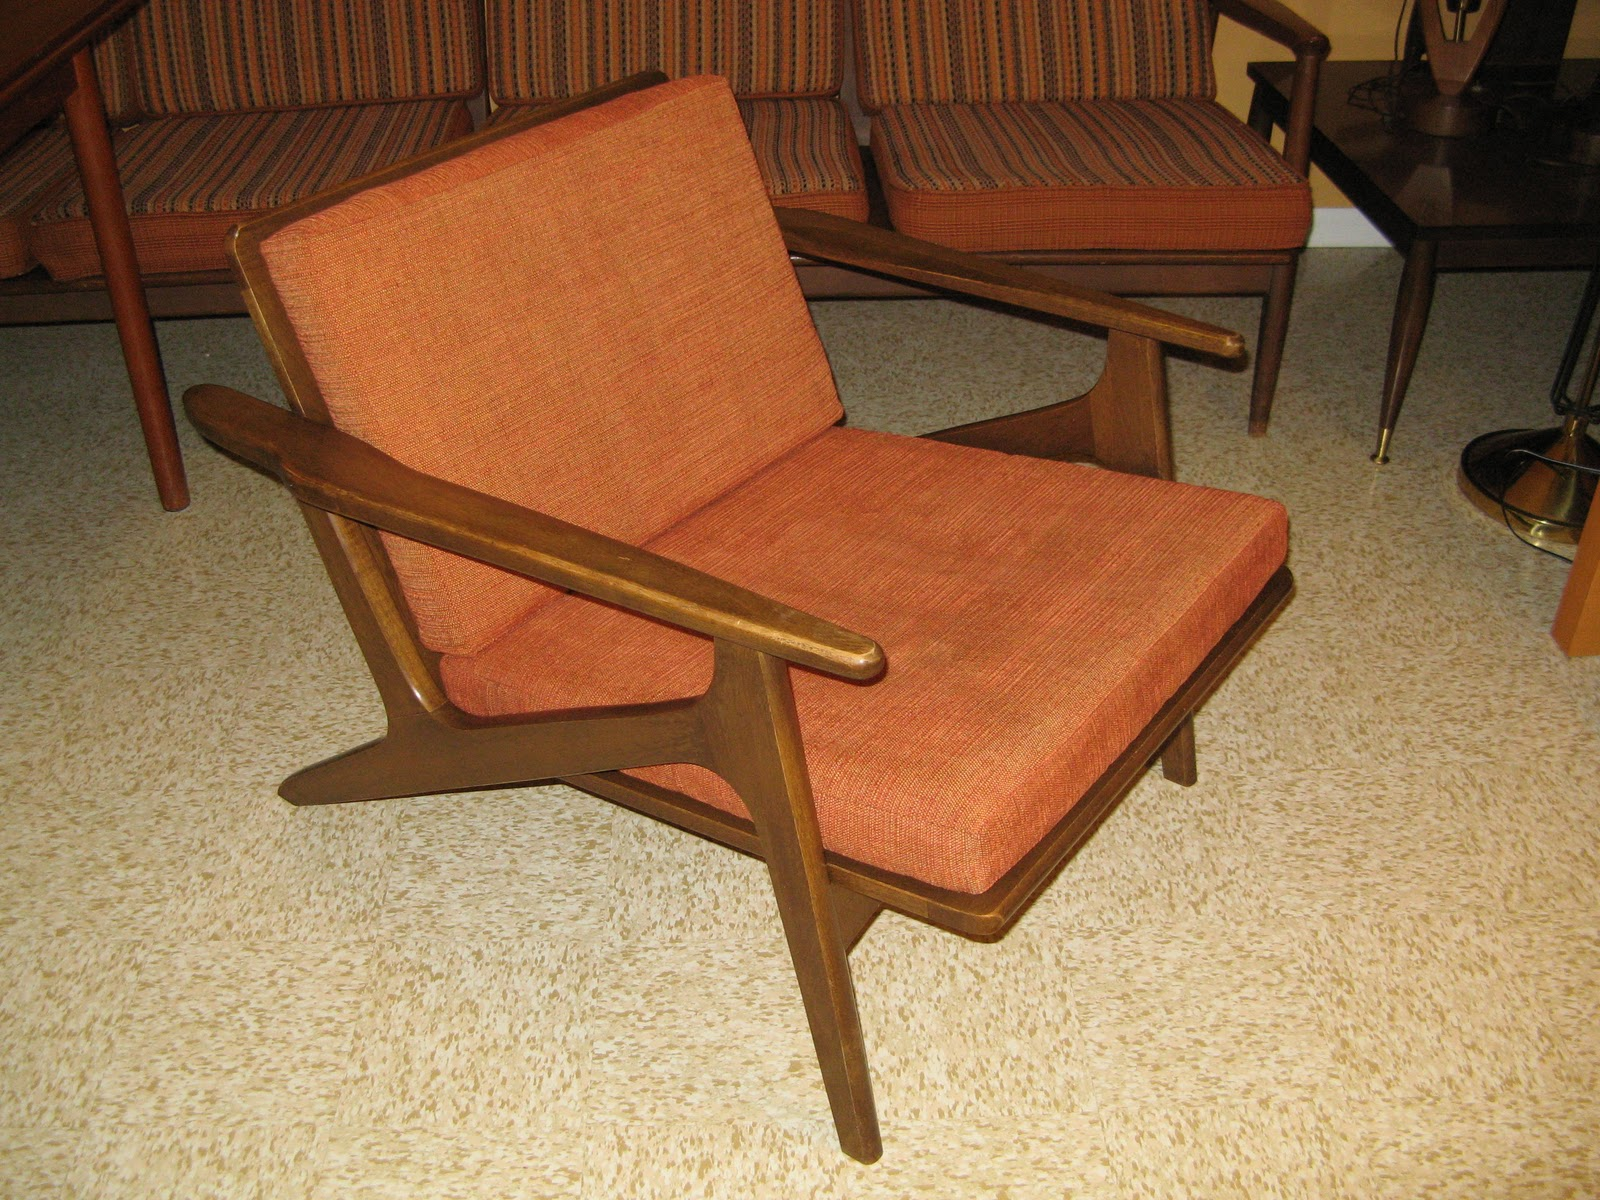 Gorgeous Danish Modern Chair In Excellent Condition. Chair Easily Comes  Apart So This Can Be Transported With A Small Vehicle.